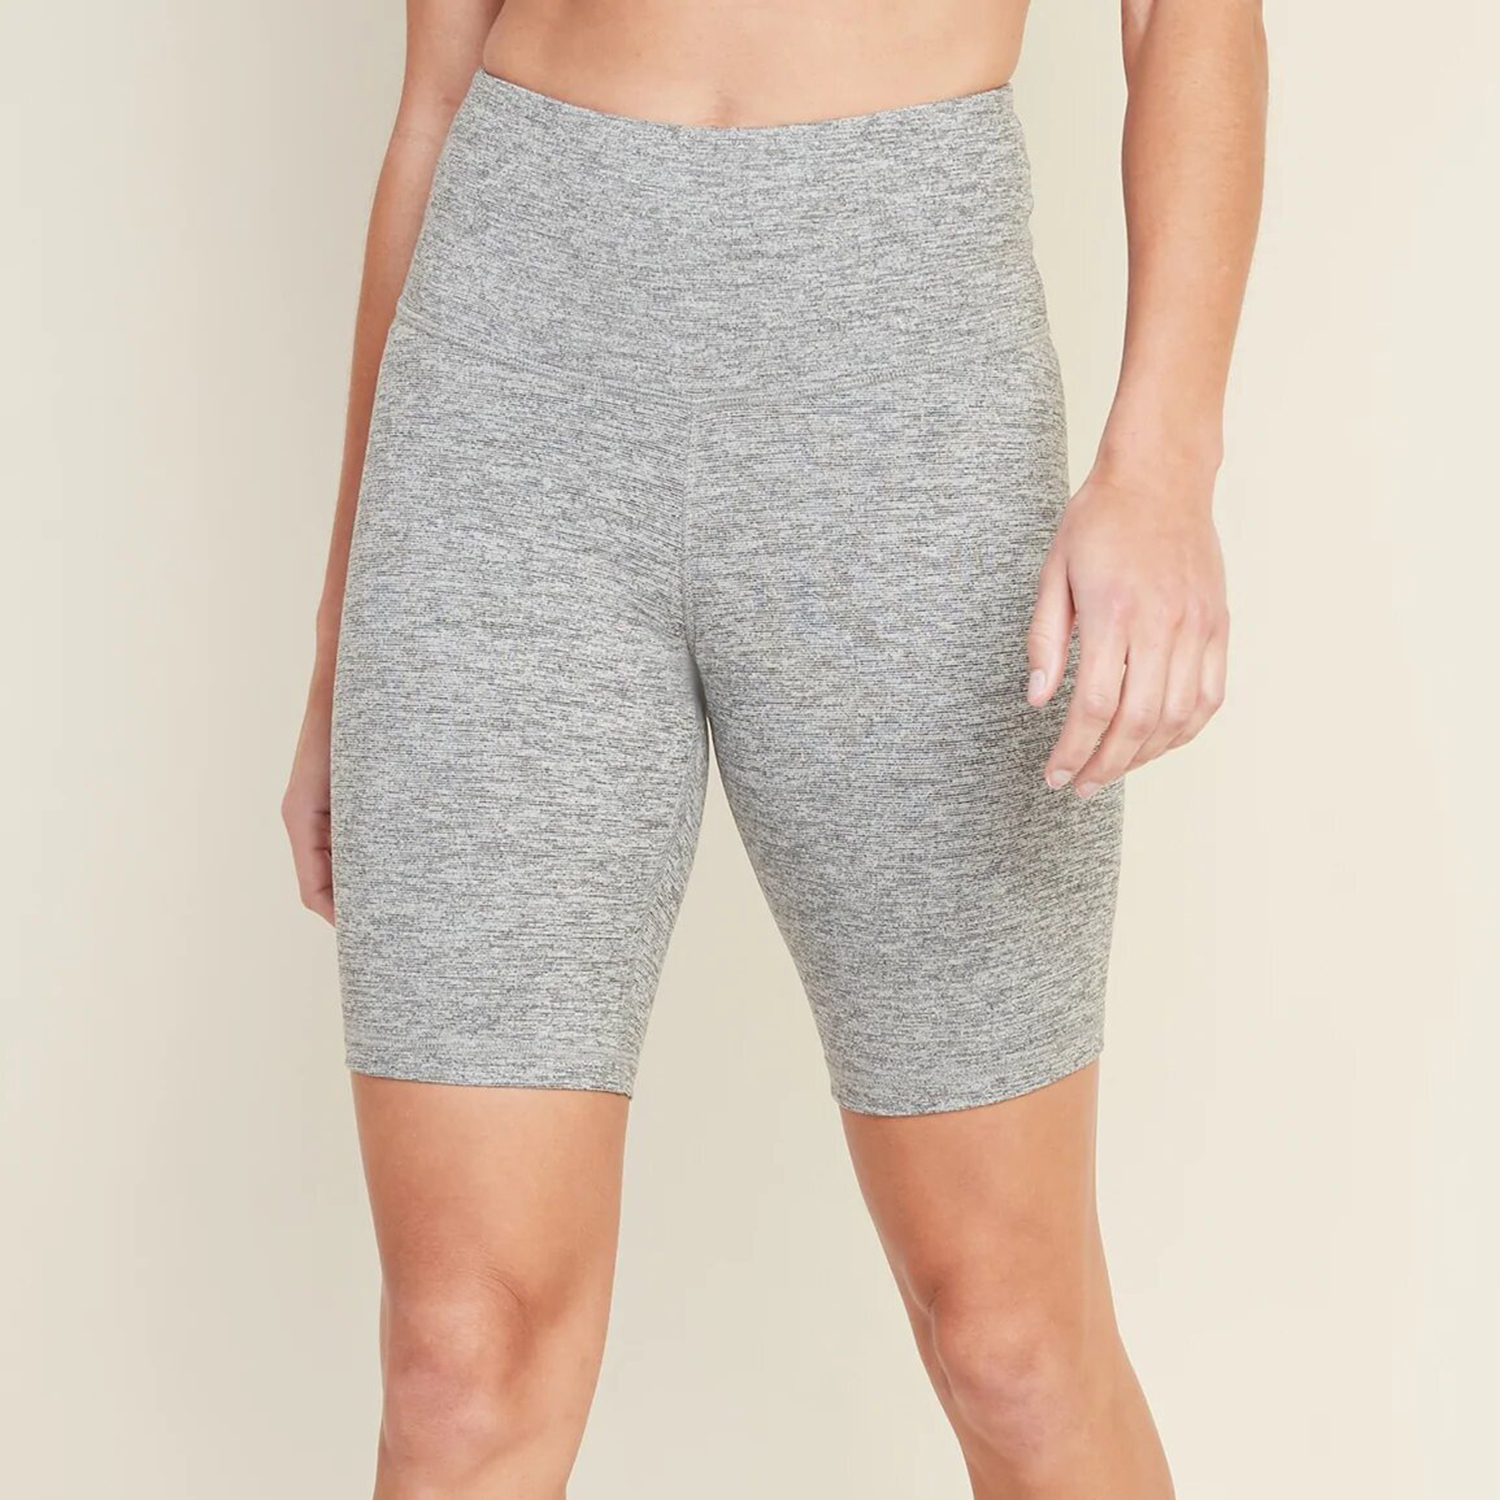 Old Navy High-Waisted Elevate Compression Bermuda Shorts 8-Inch Inseam Heather Grey